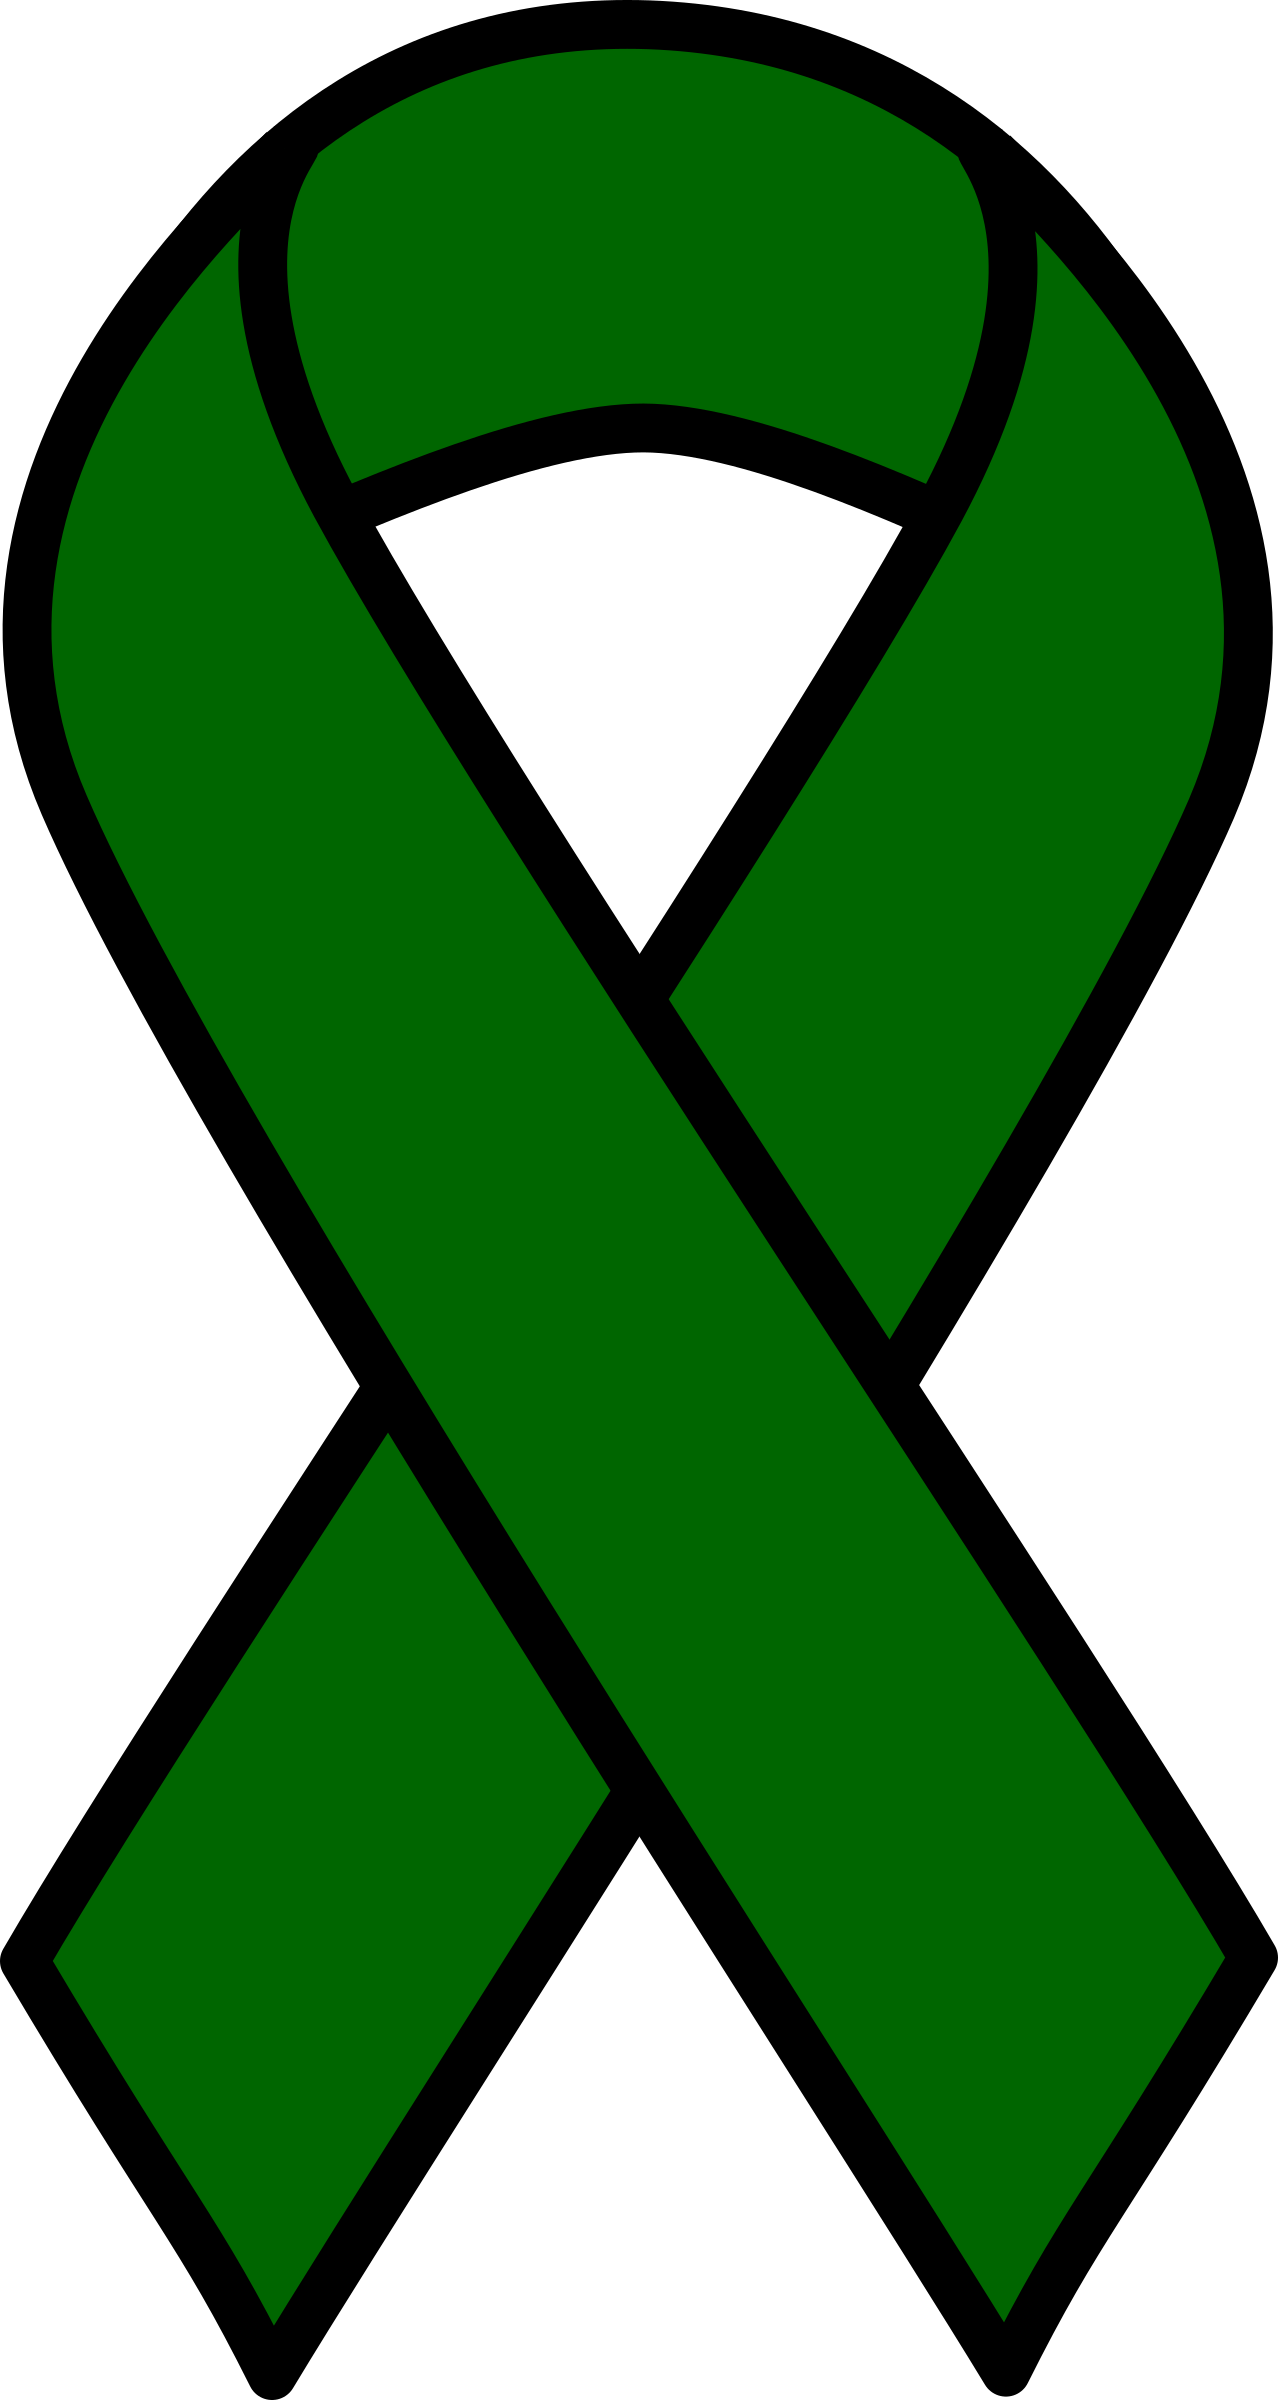 Cancer symbol clipart png black and white download Clipart emerald liver cancer ribbon - ClipartBarn png black and white download